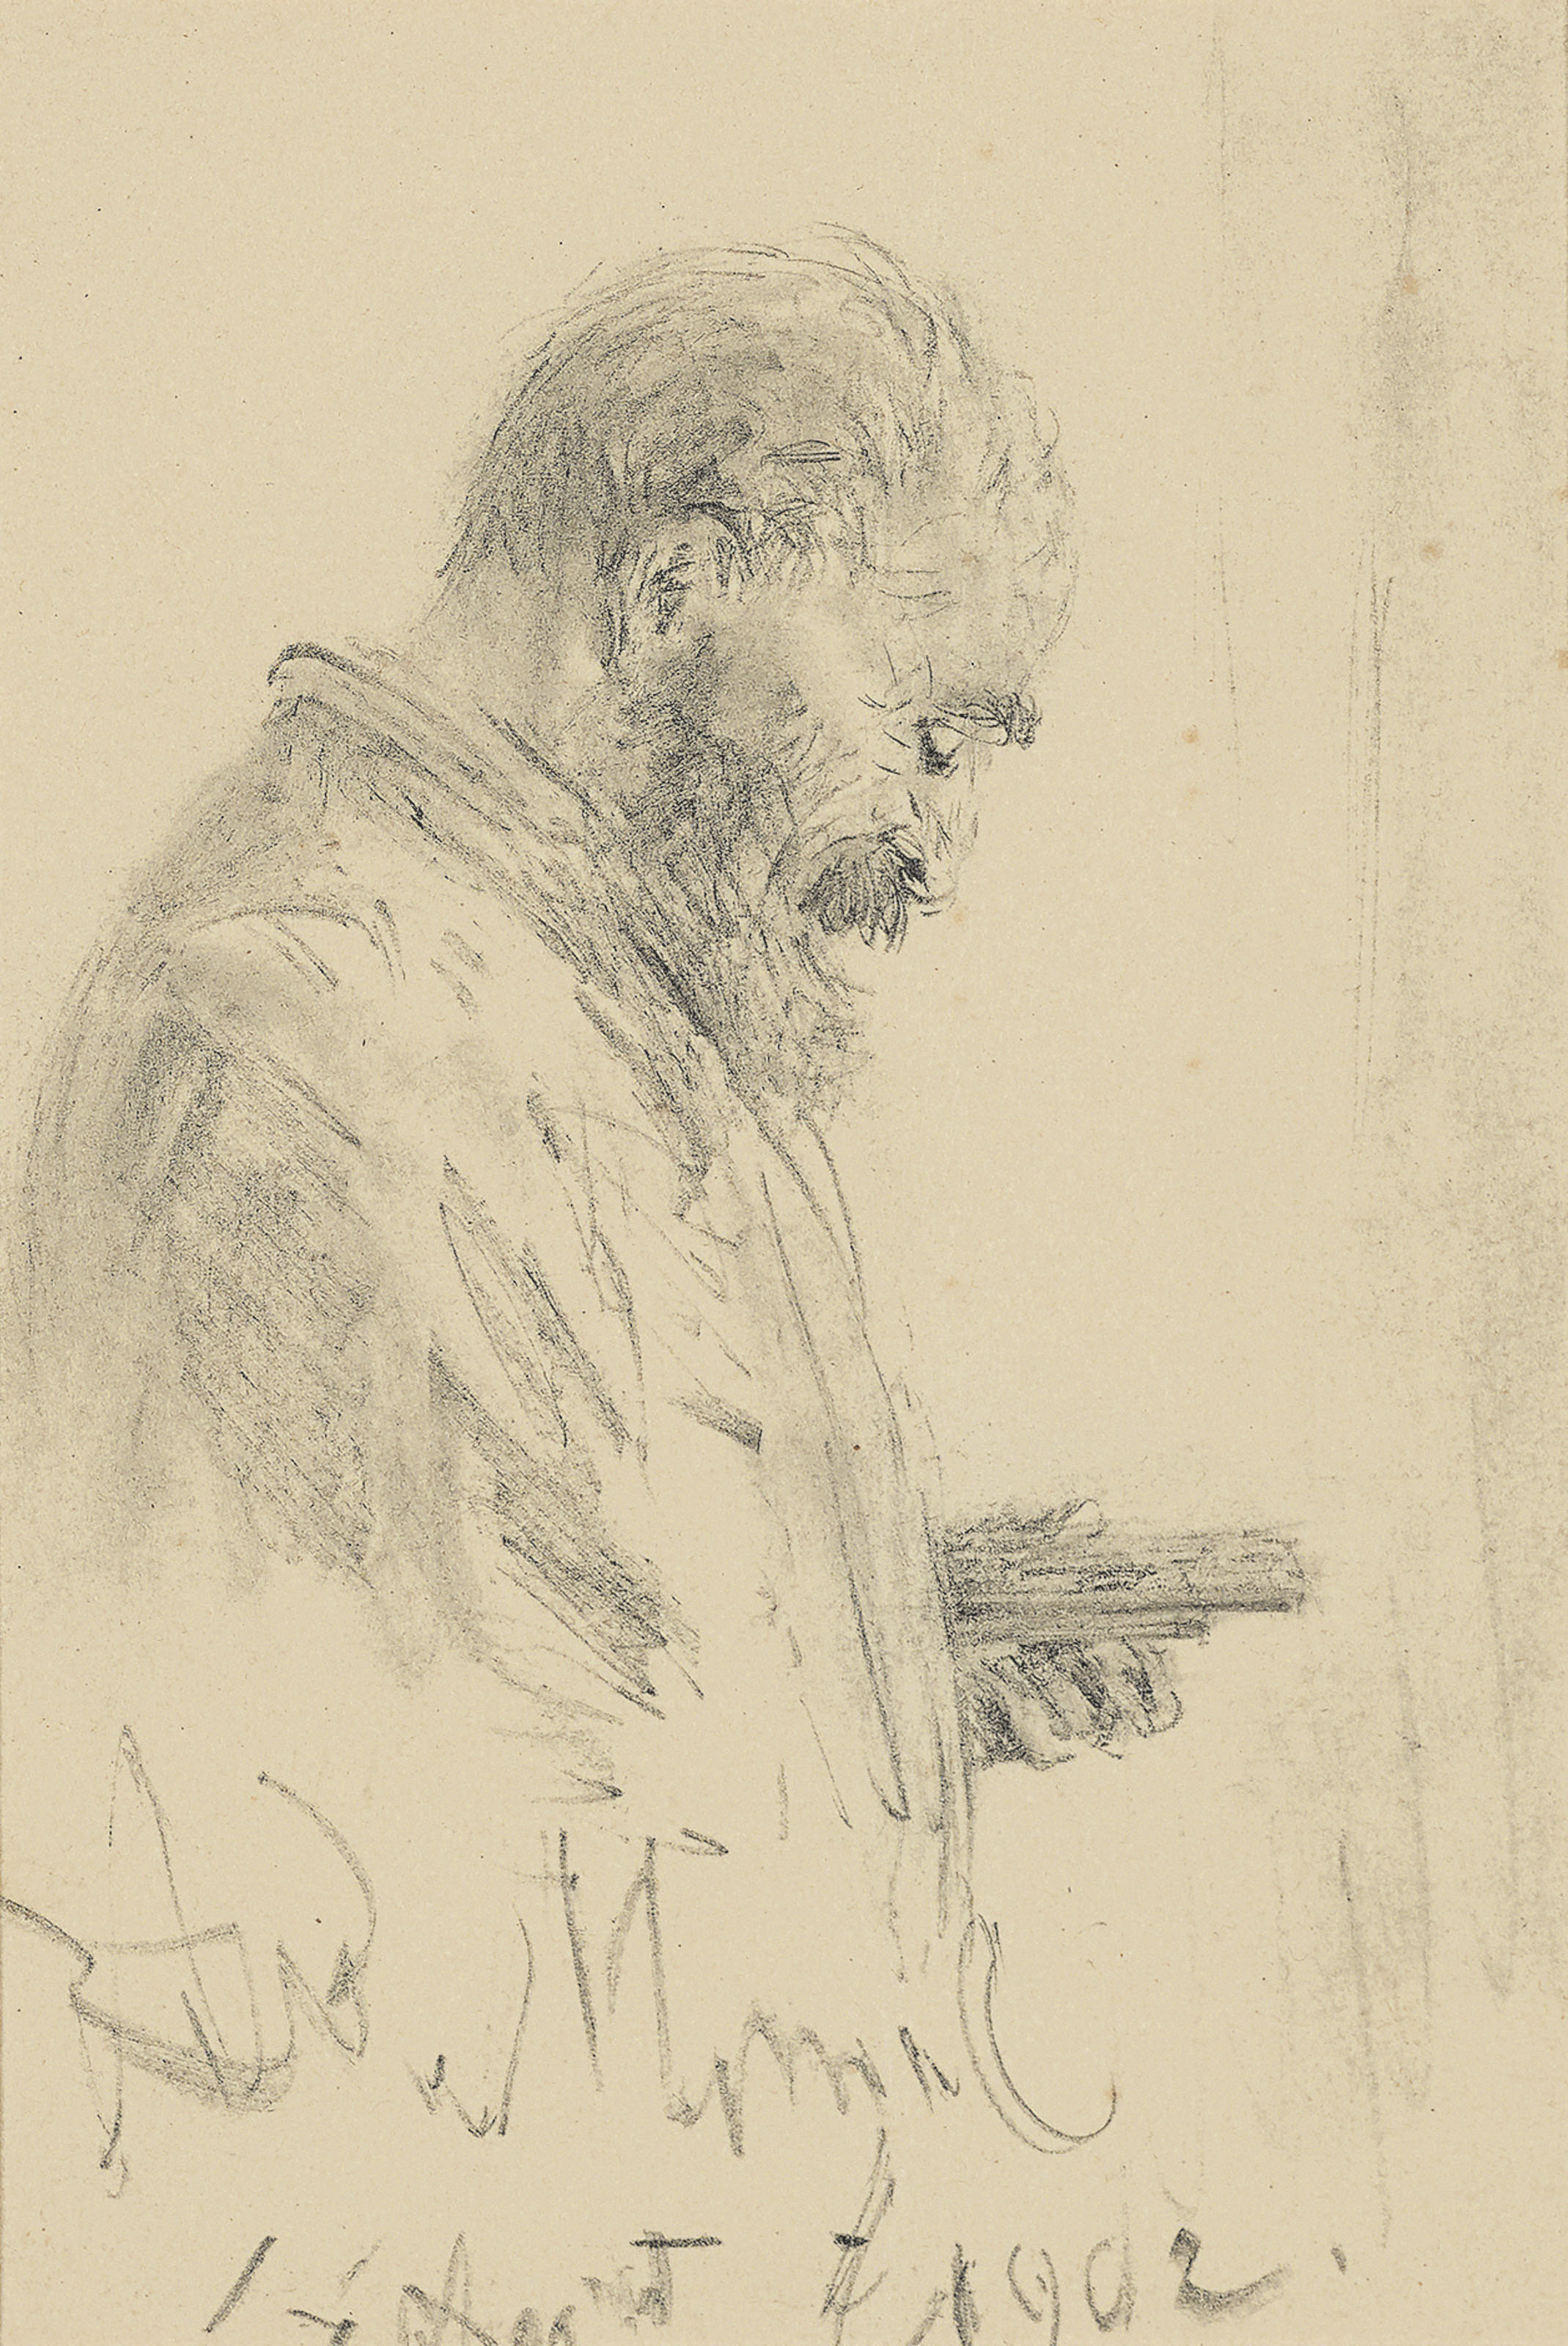 Profile study of a man with sketching block and pencils